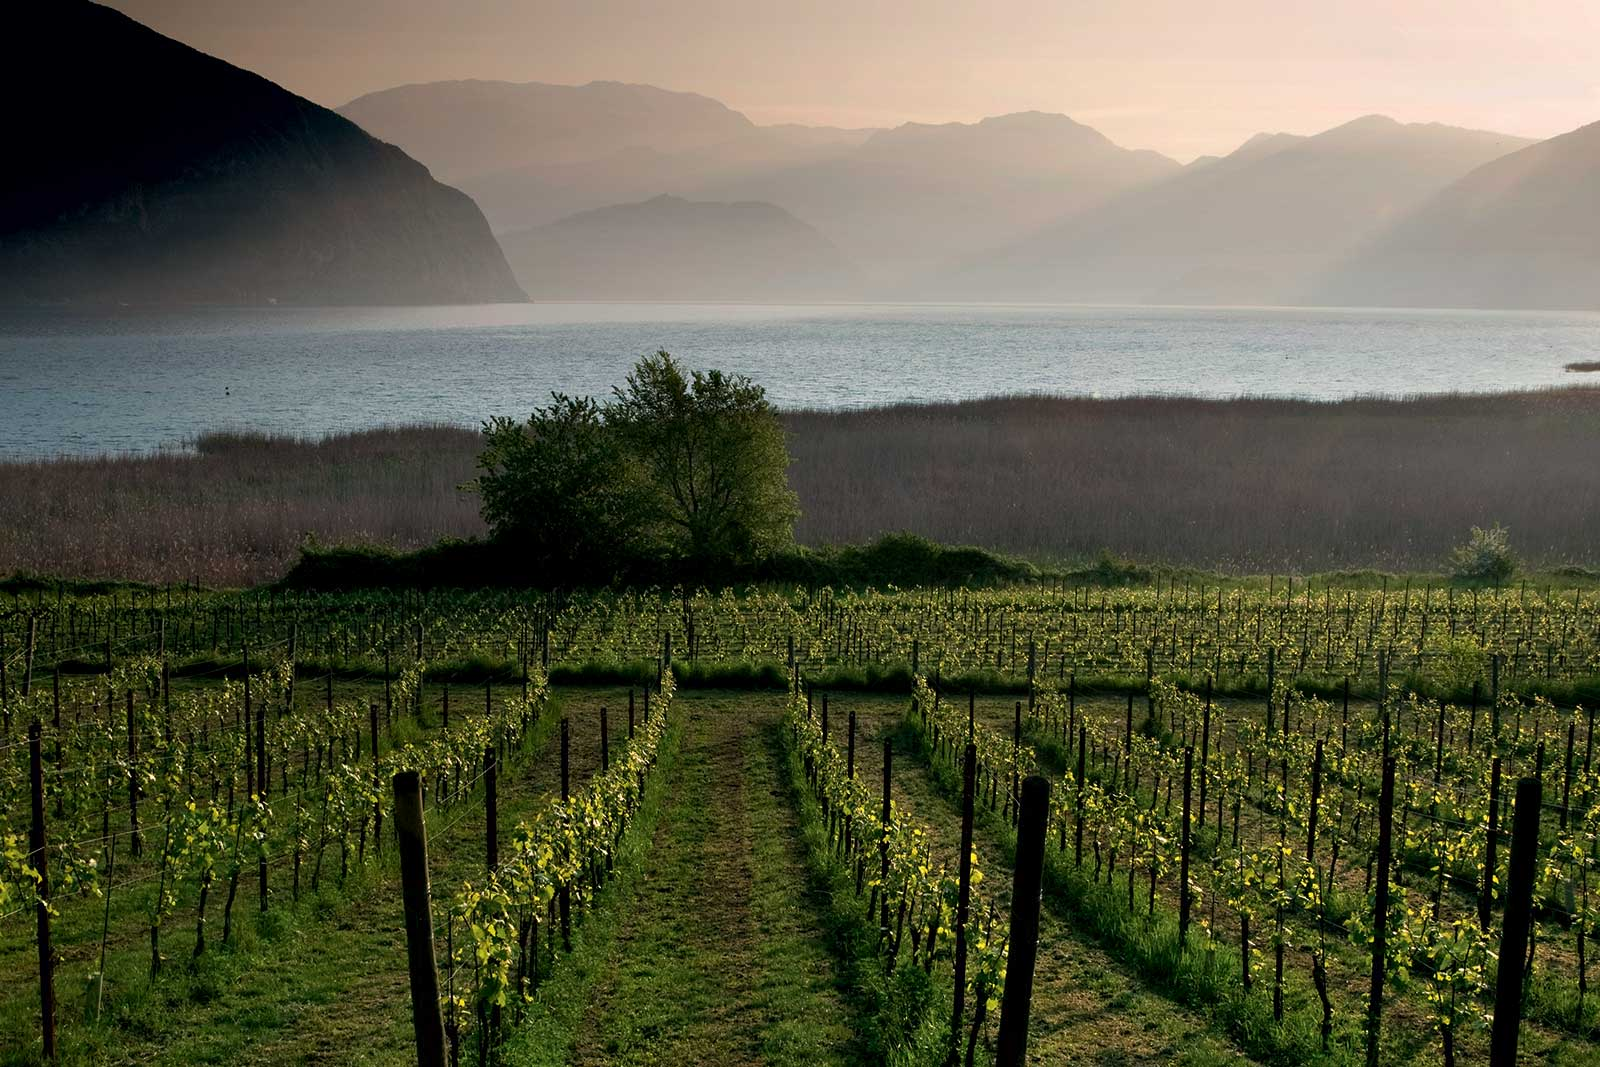 Lake Iseo is seen behind the vineyards of Franciacorta. ©Aldo Padovan/Consorzio di Franciacorta